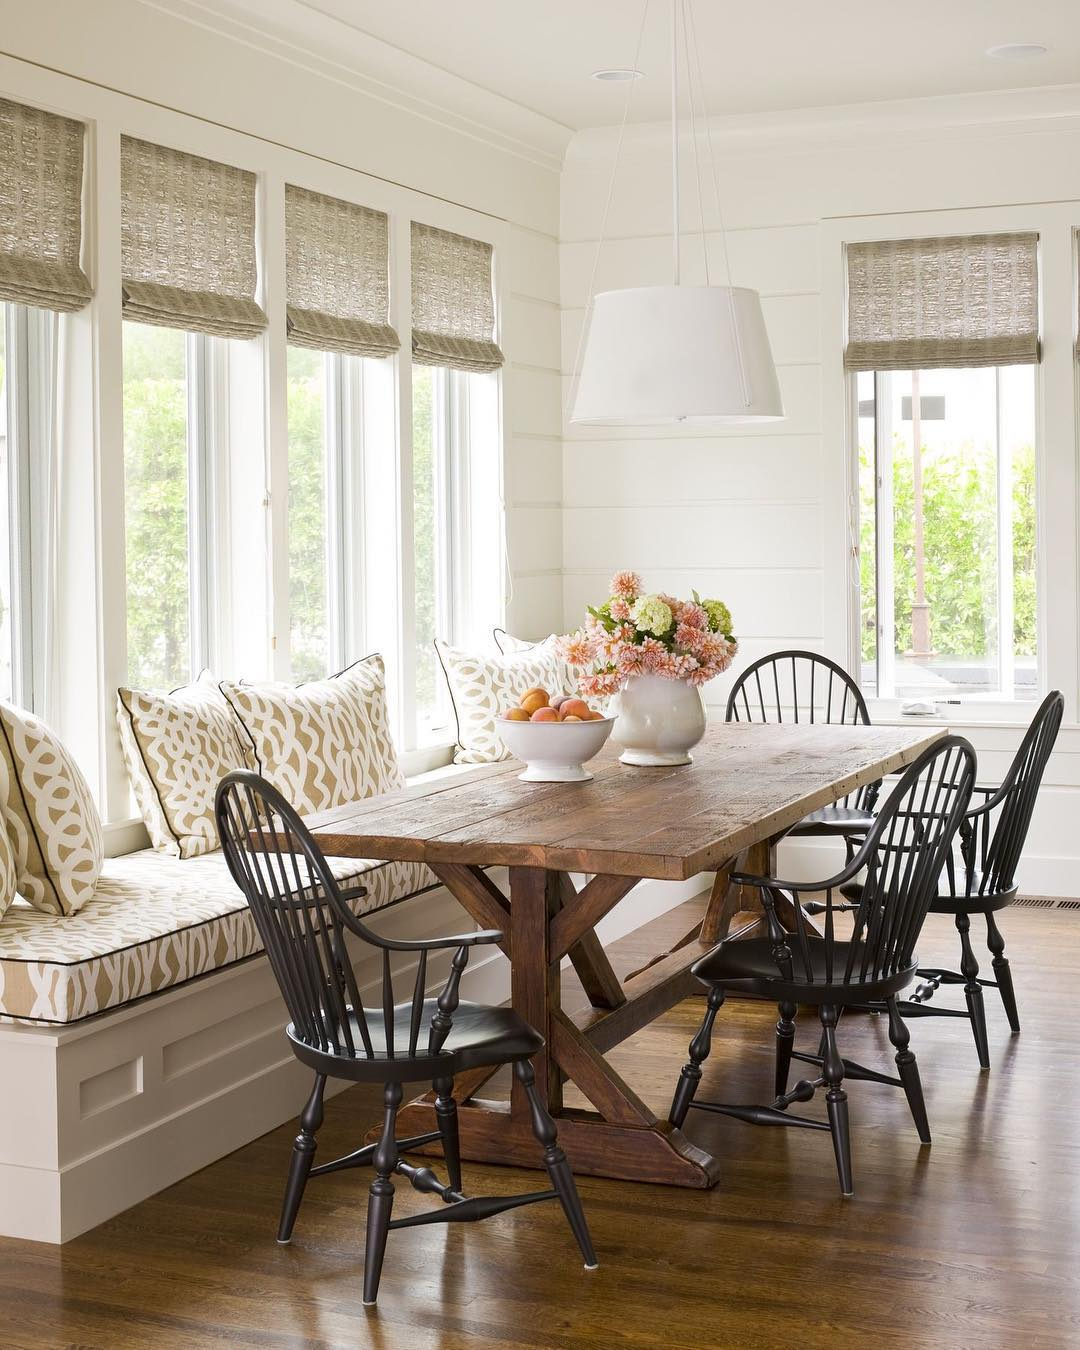 Farmhouse Dining Table with Florals and Fruits